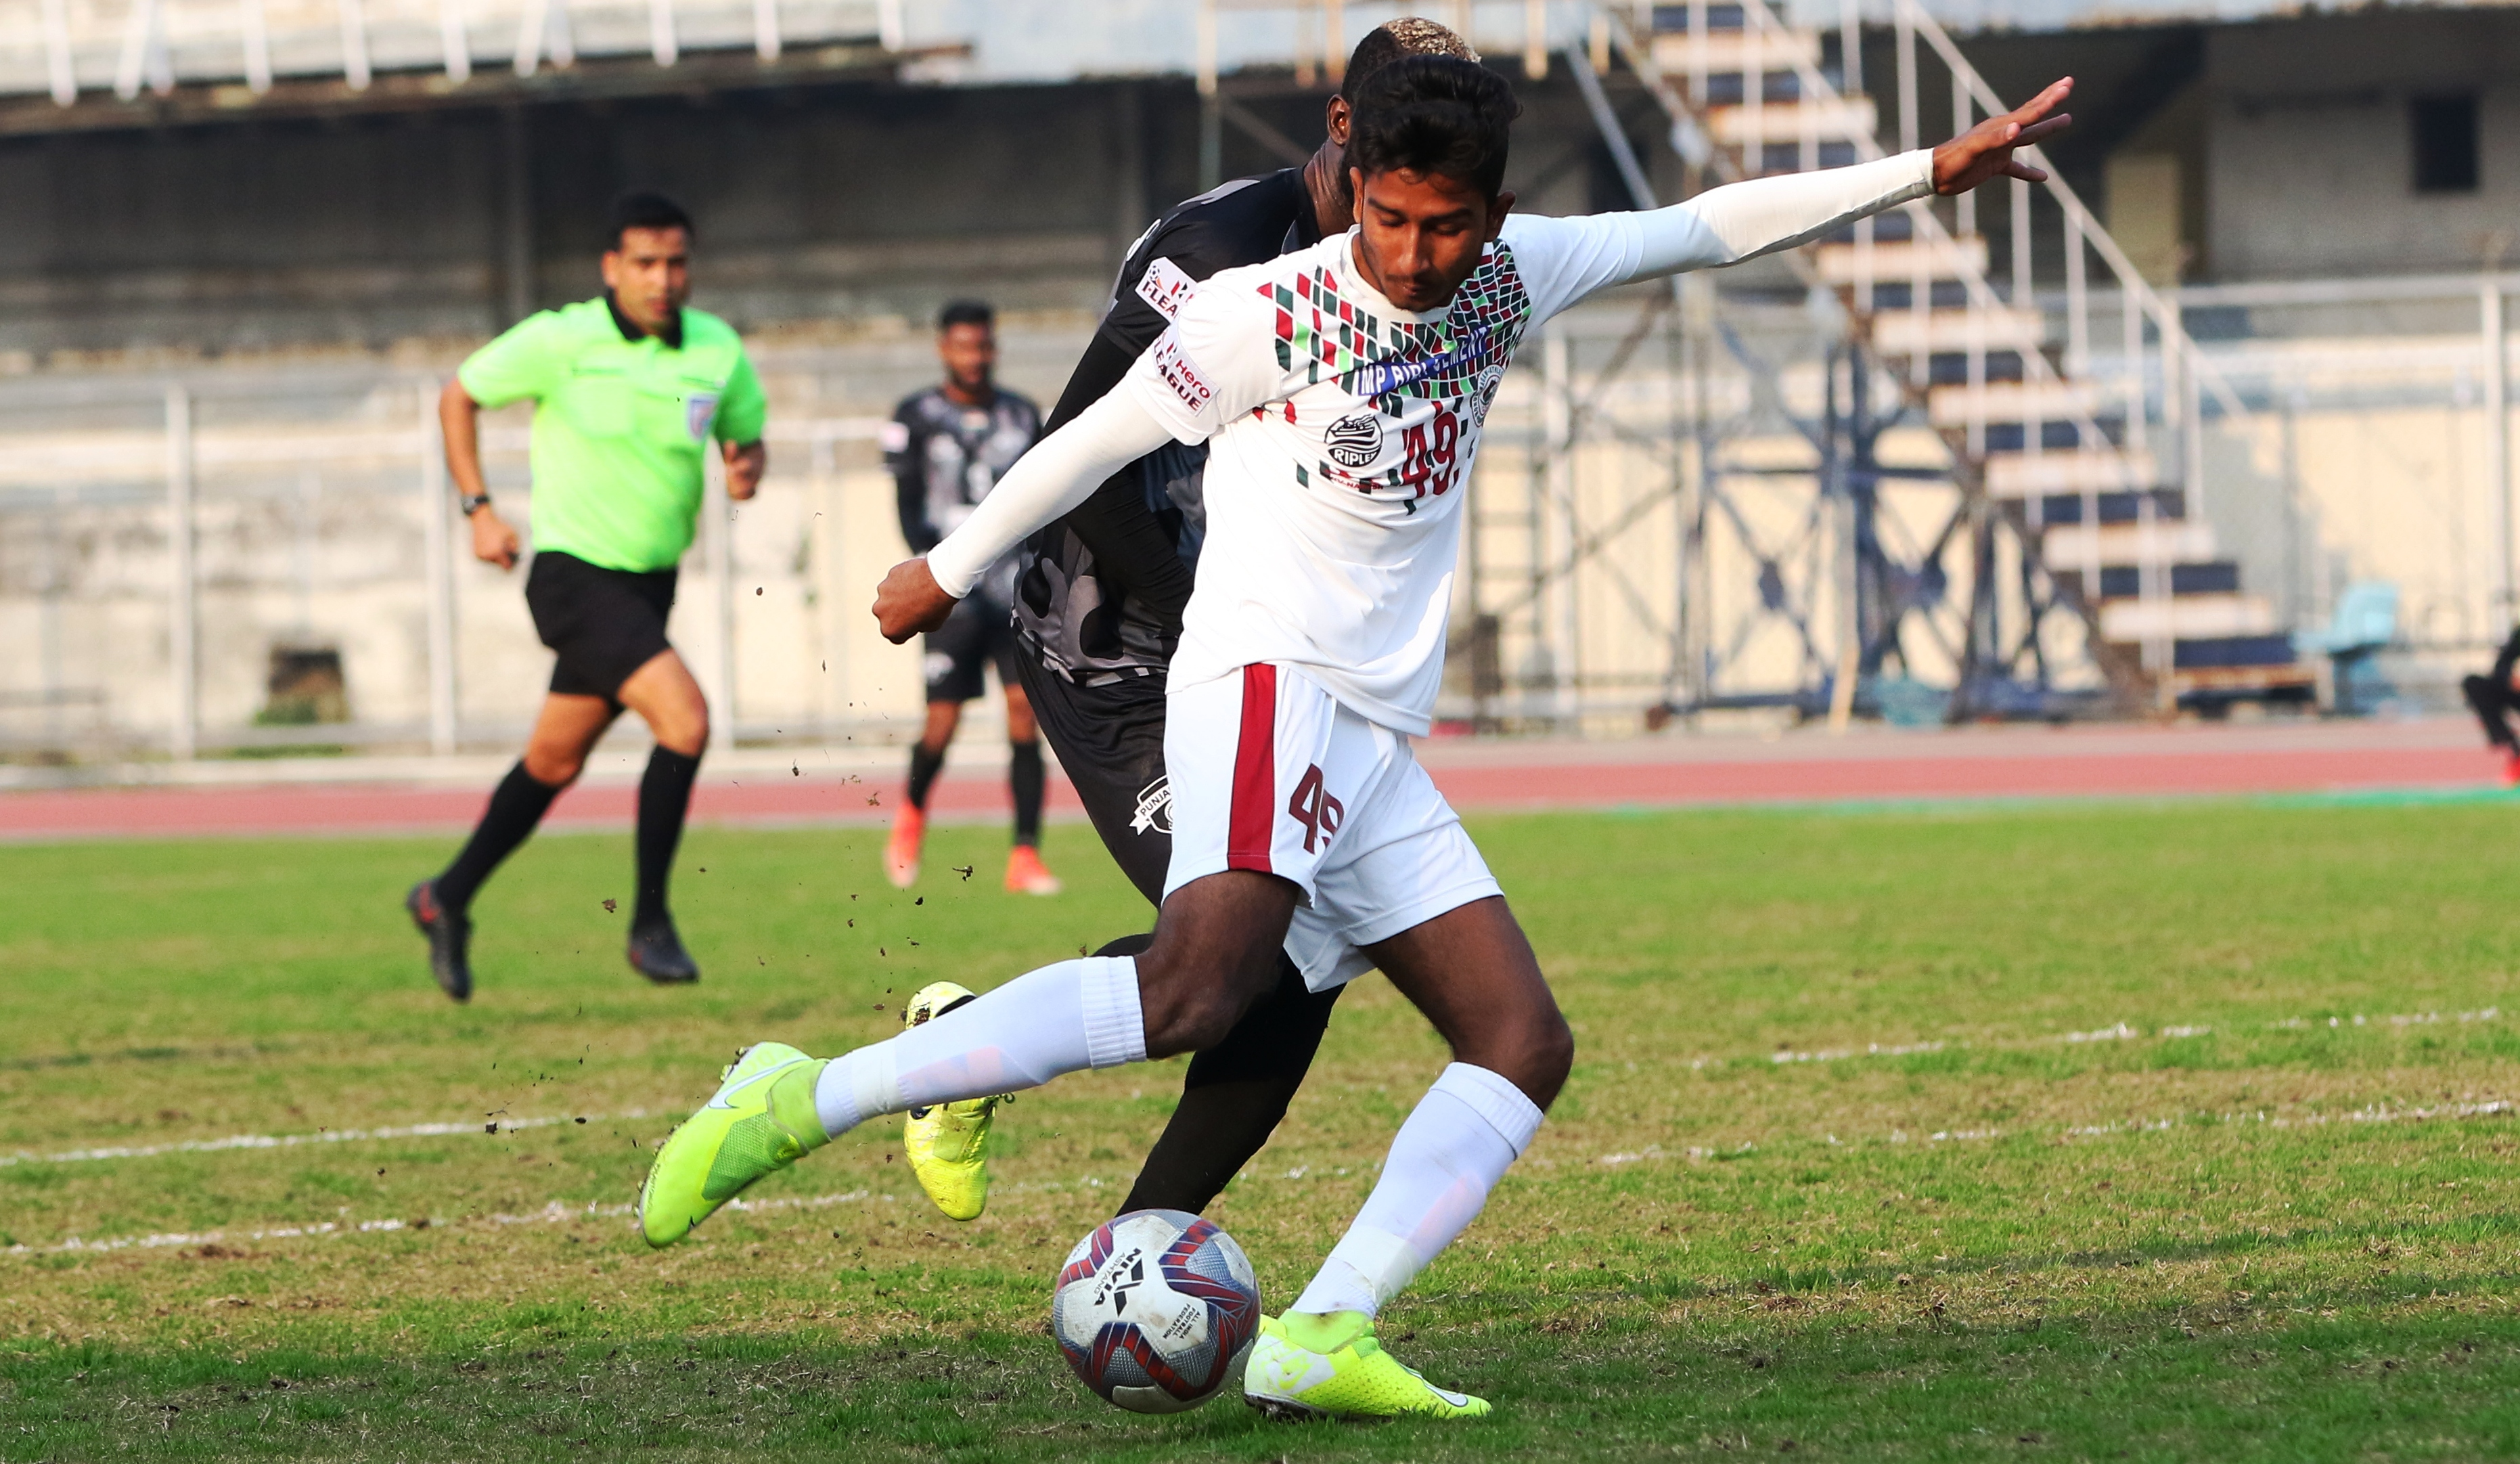 Mohun Bagan's Subha Ghosh thanks his father for backing him while his teammate Sheikh Sahil labels his father as his 'luckiest charm'.